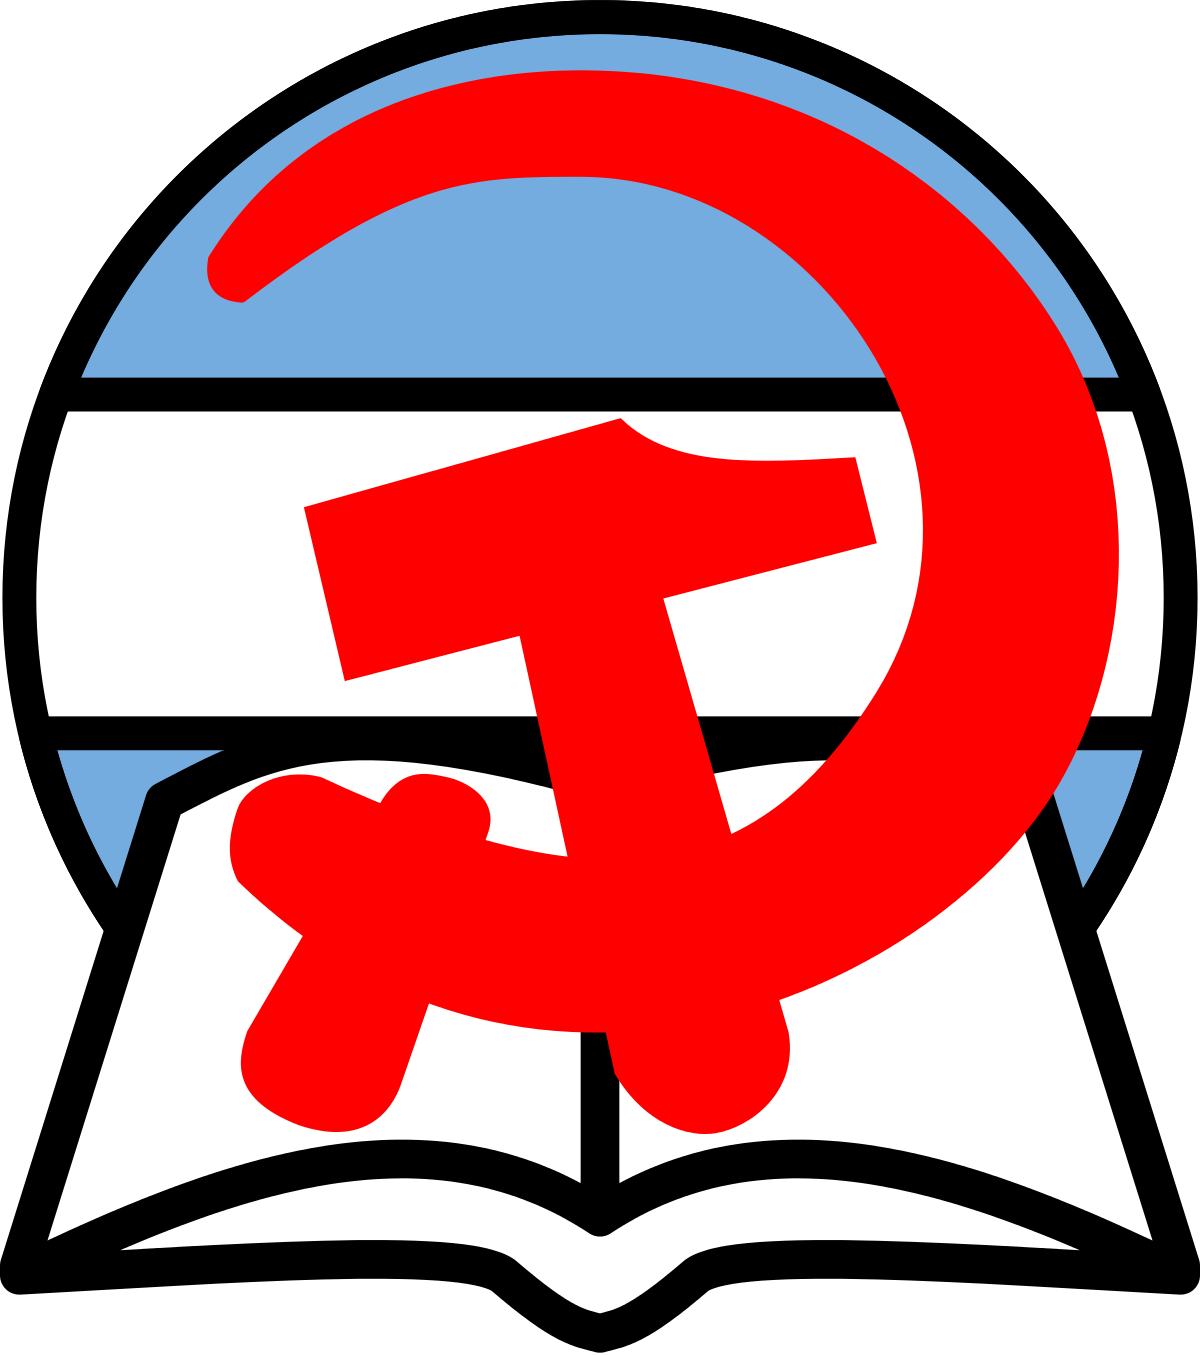 Communist Party Of Argentina Clipart.